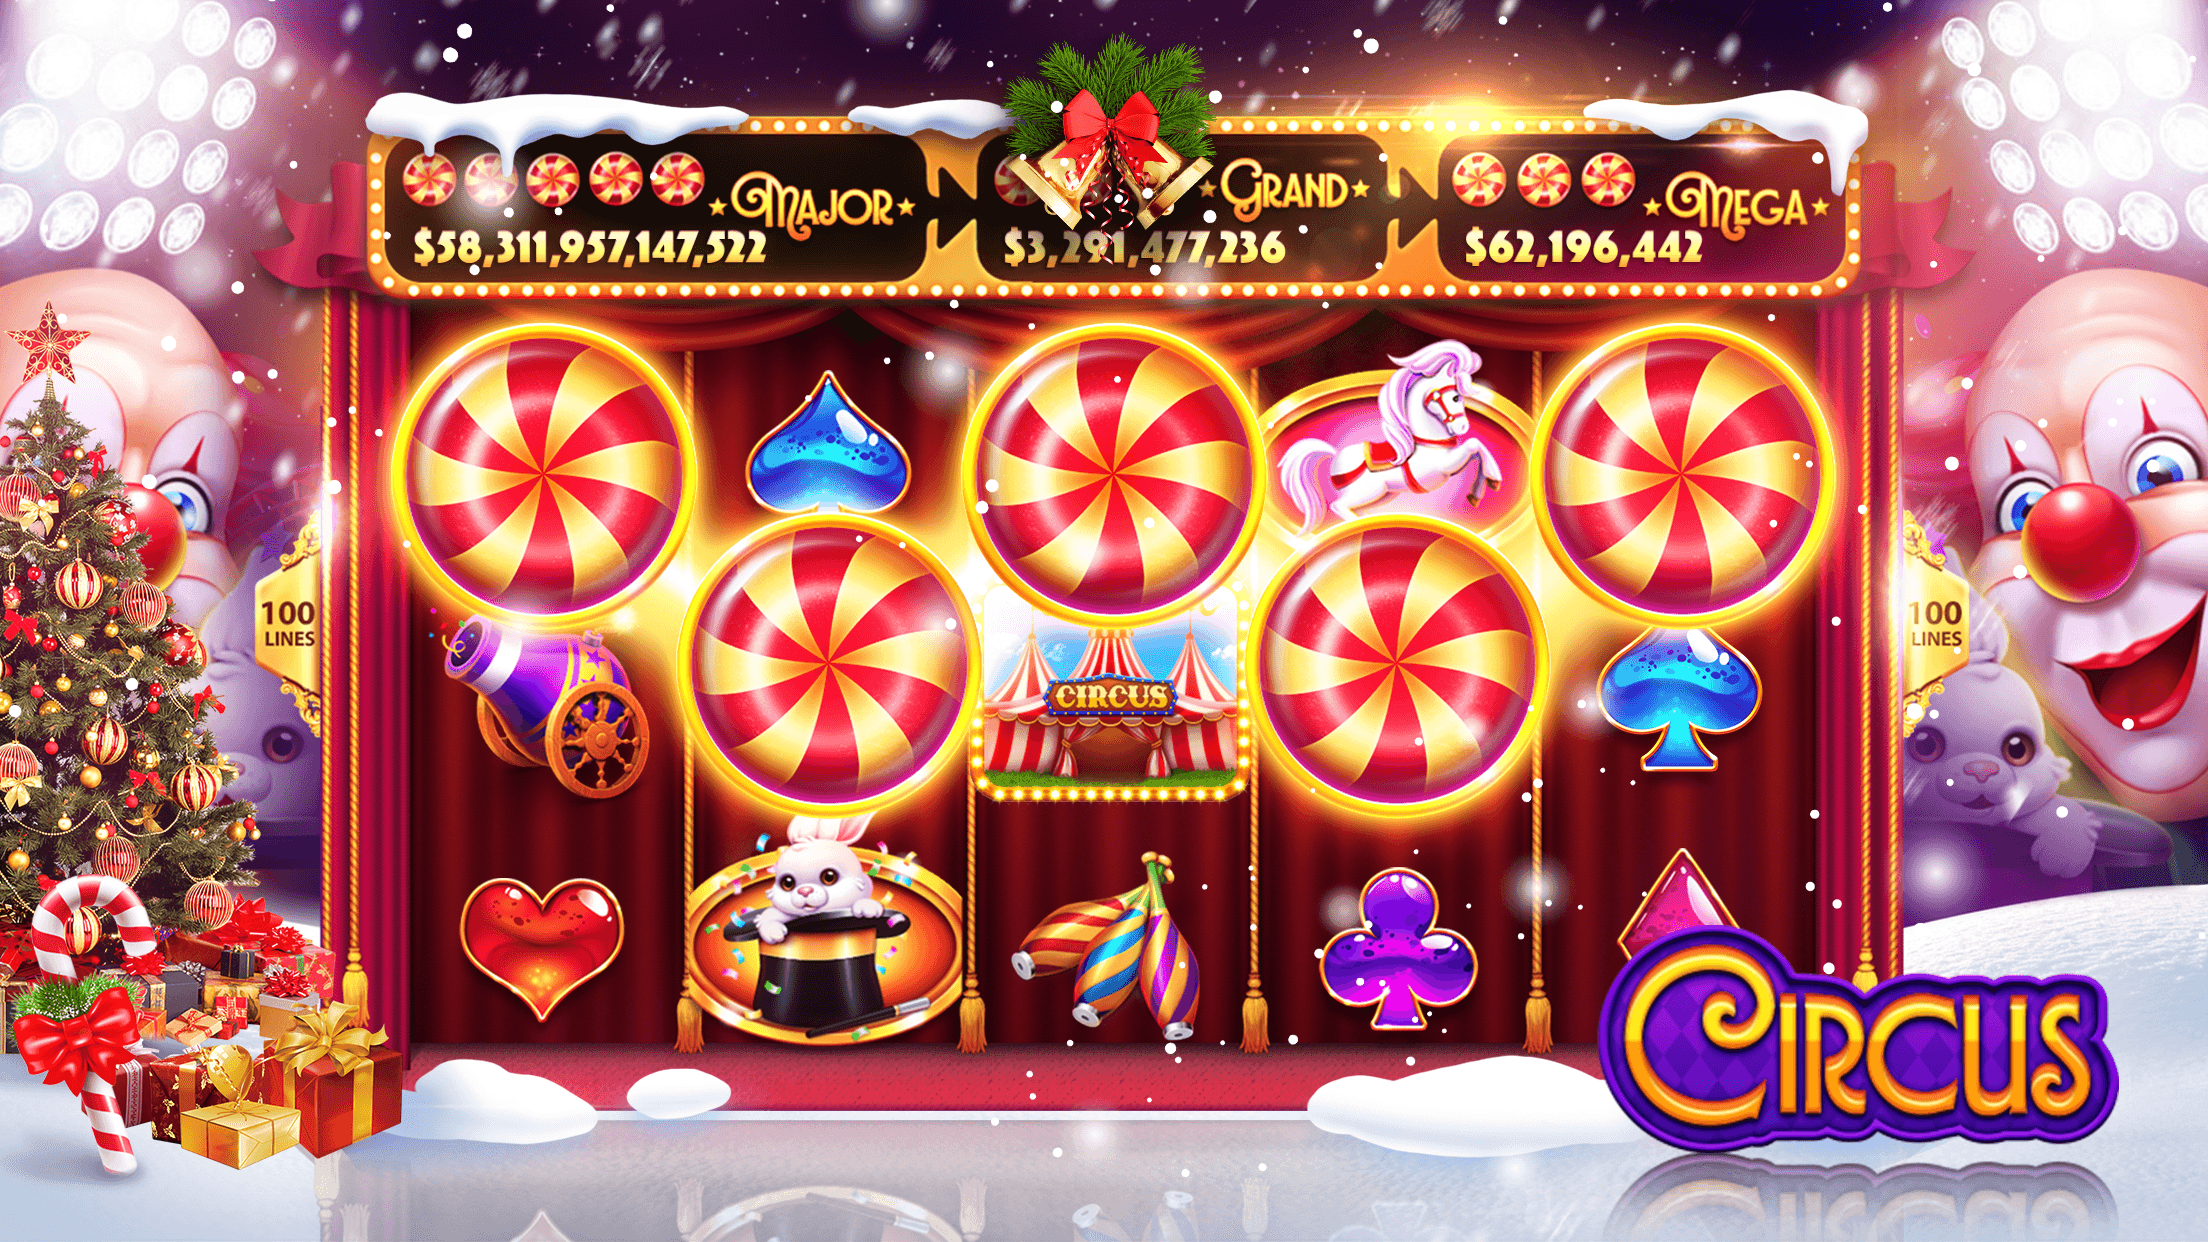 Play Casino Slots Online For Free